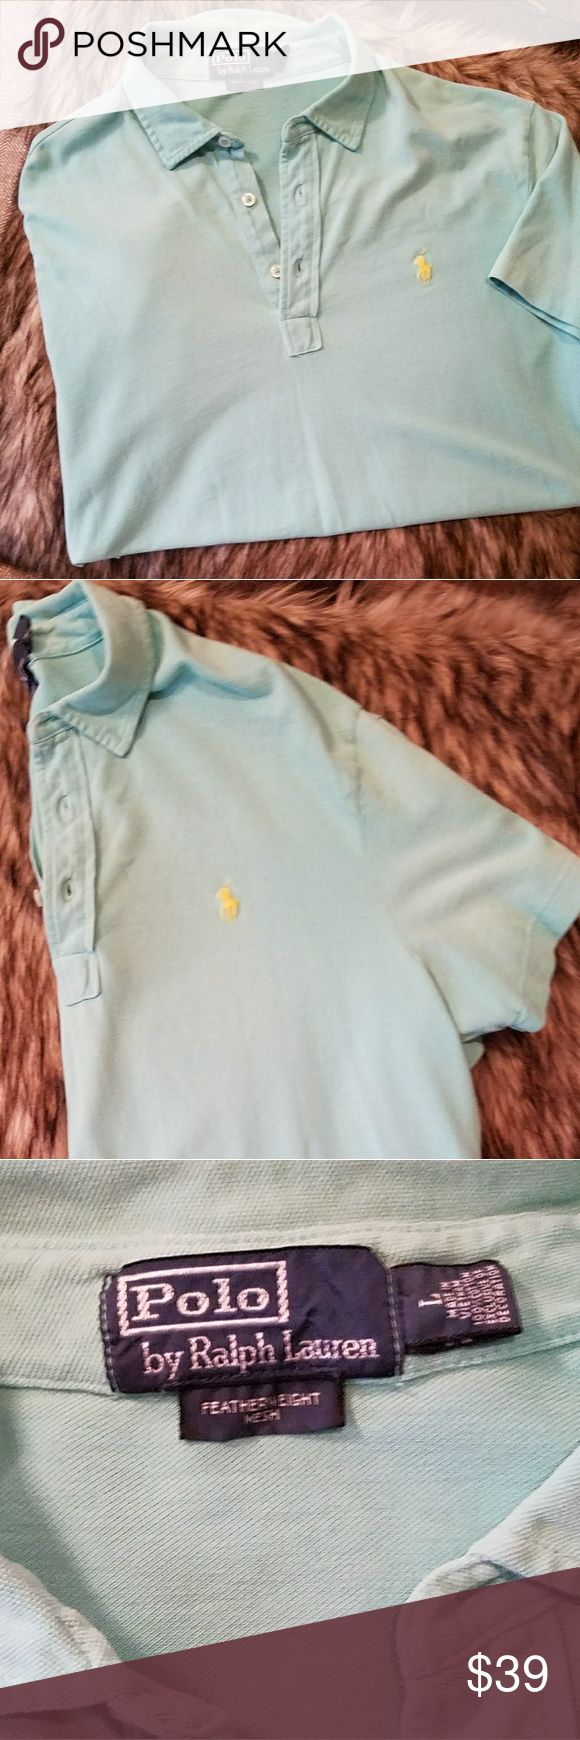 Ralph Lauren Men's Polo Shirt Large Polo by Ralph Lauren featherweight mesh polo shirt. Size men's large. Color seafoam green with yellow Polo logo. This comes from a smoke-free pet-free home. Feel free to ask questions. Excellent condition. No stains rips or tears. Ralph Lauren Shirts Polos